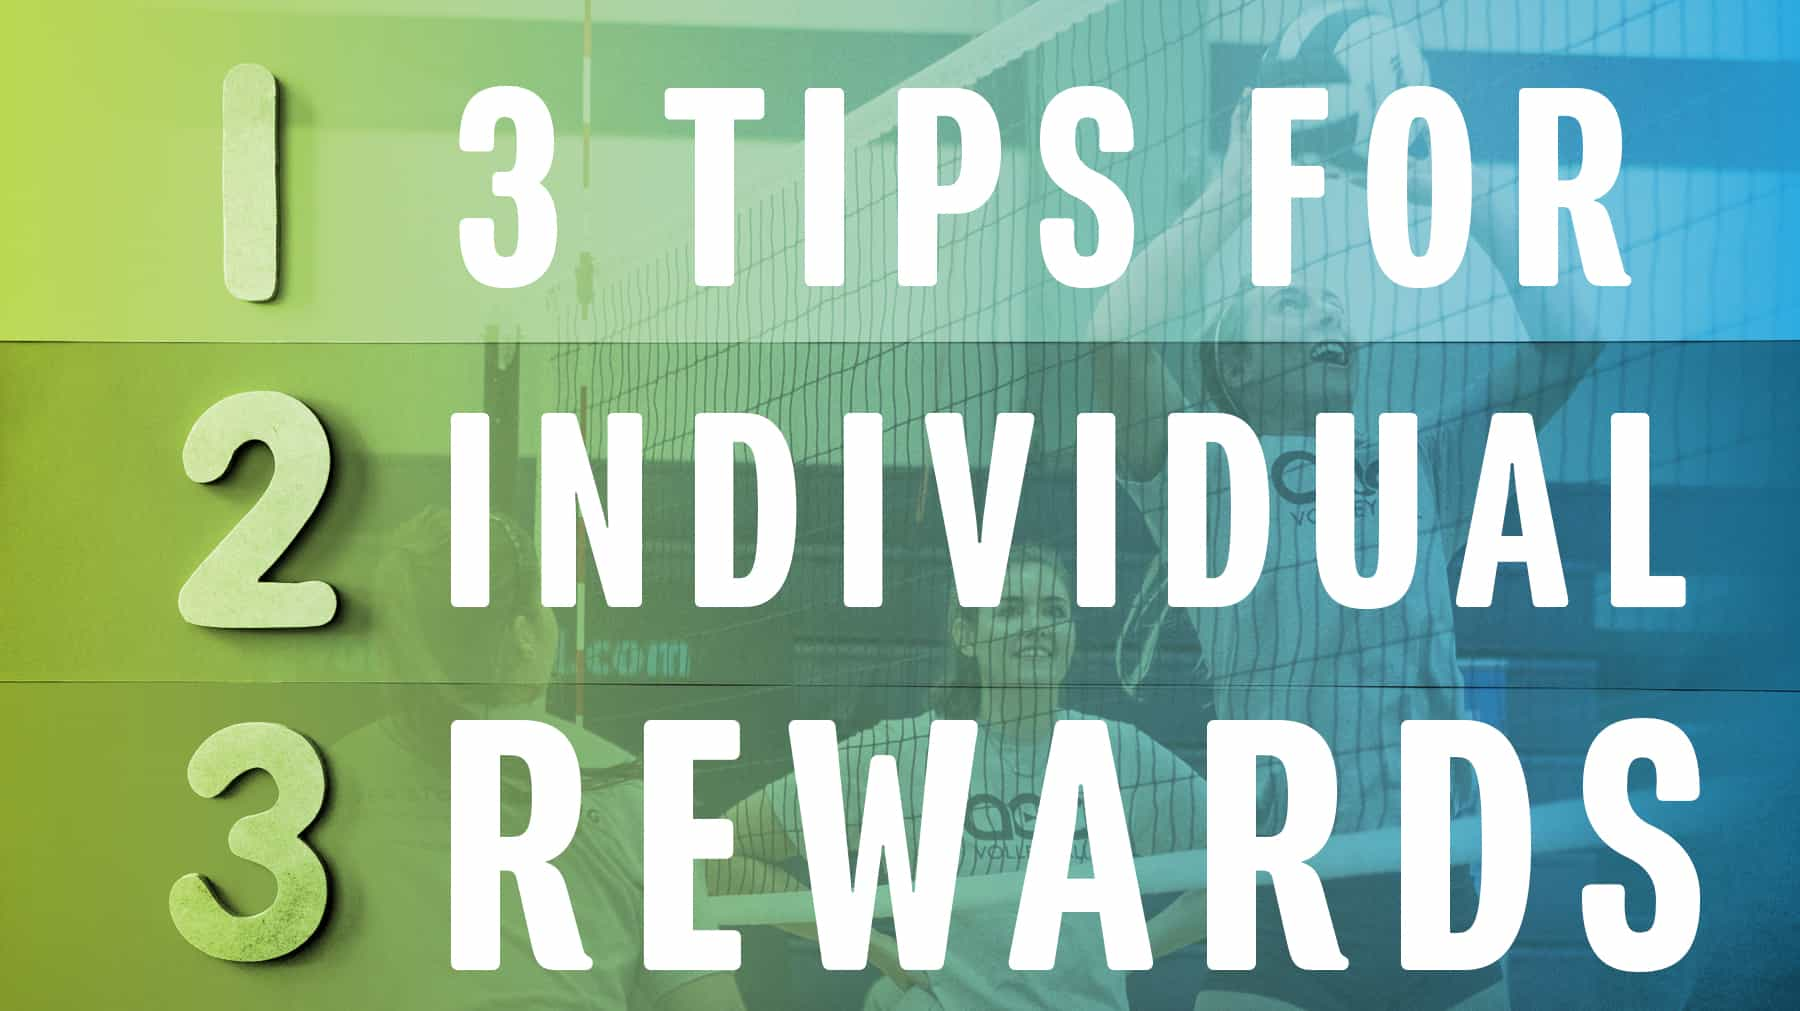 3 tips for individual rewards